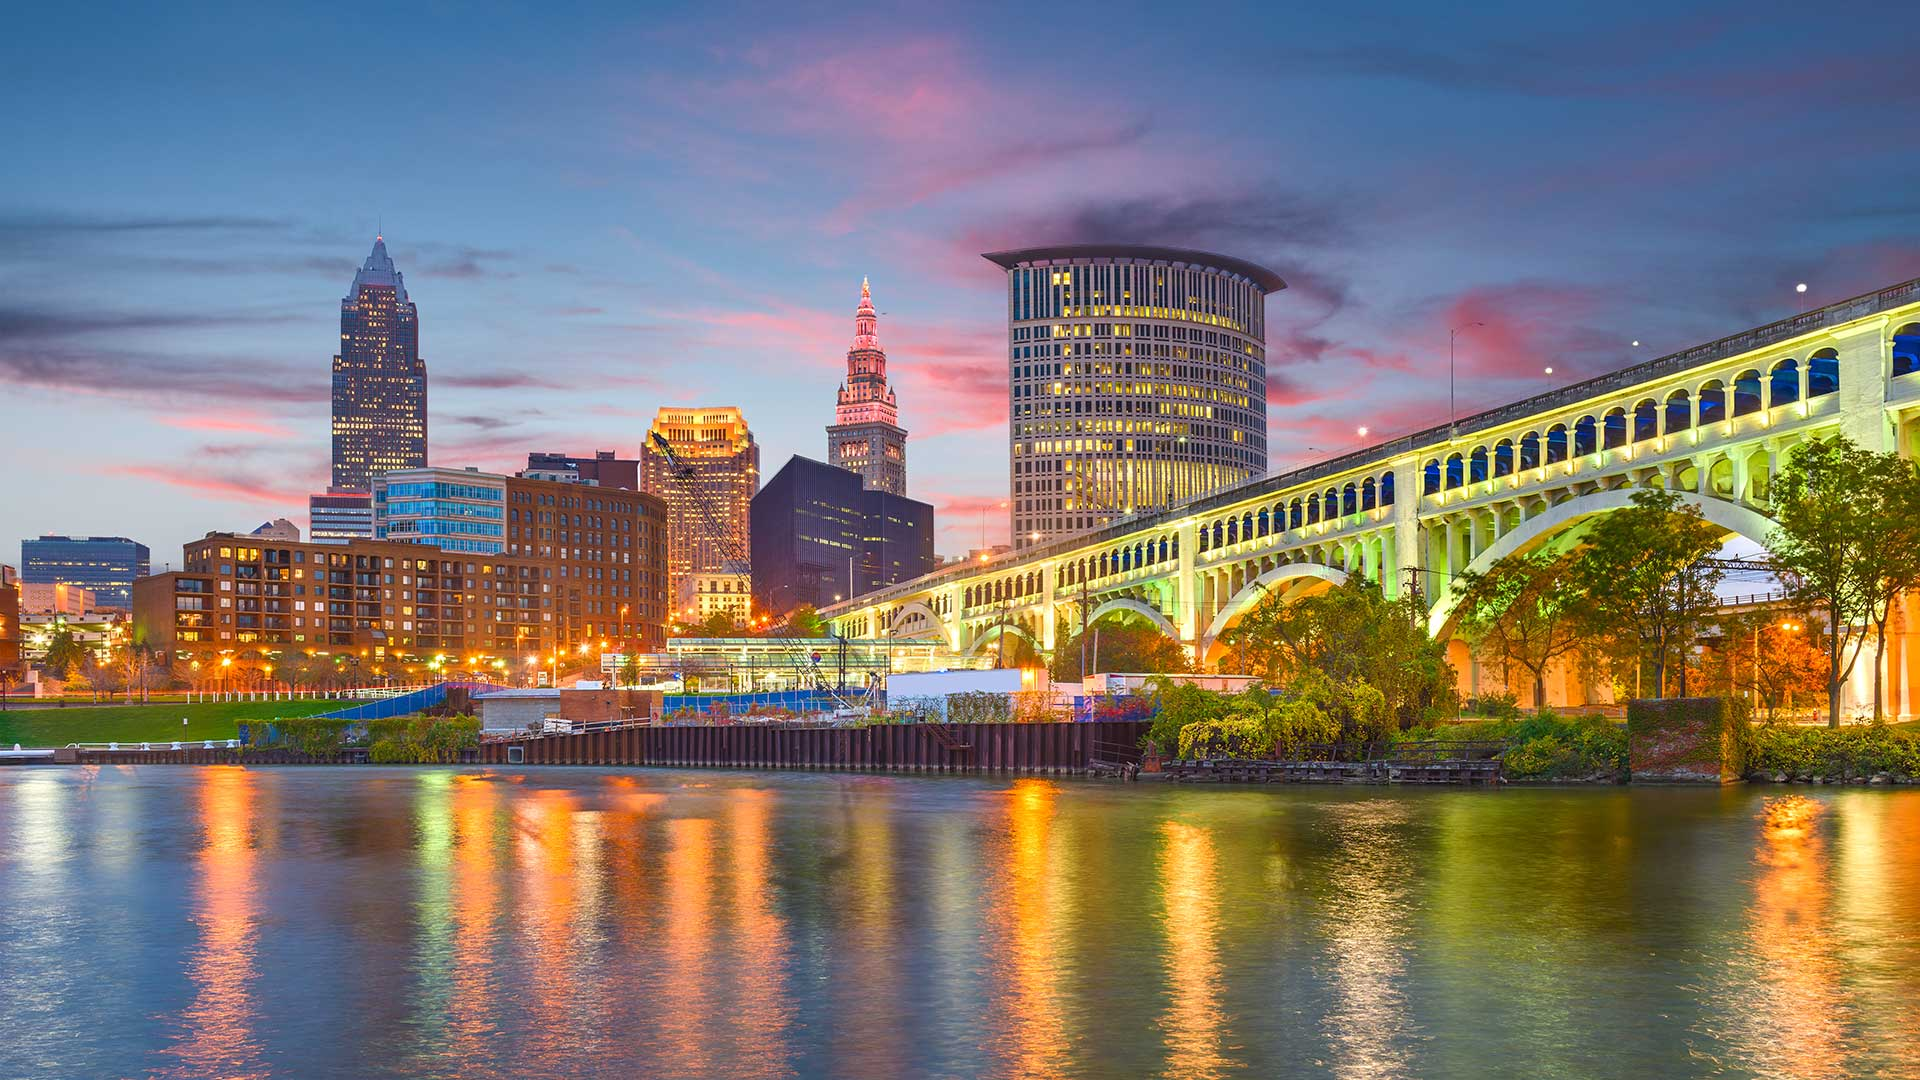 Panorama to illustrate dating in cleveland